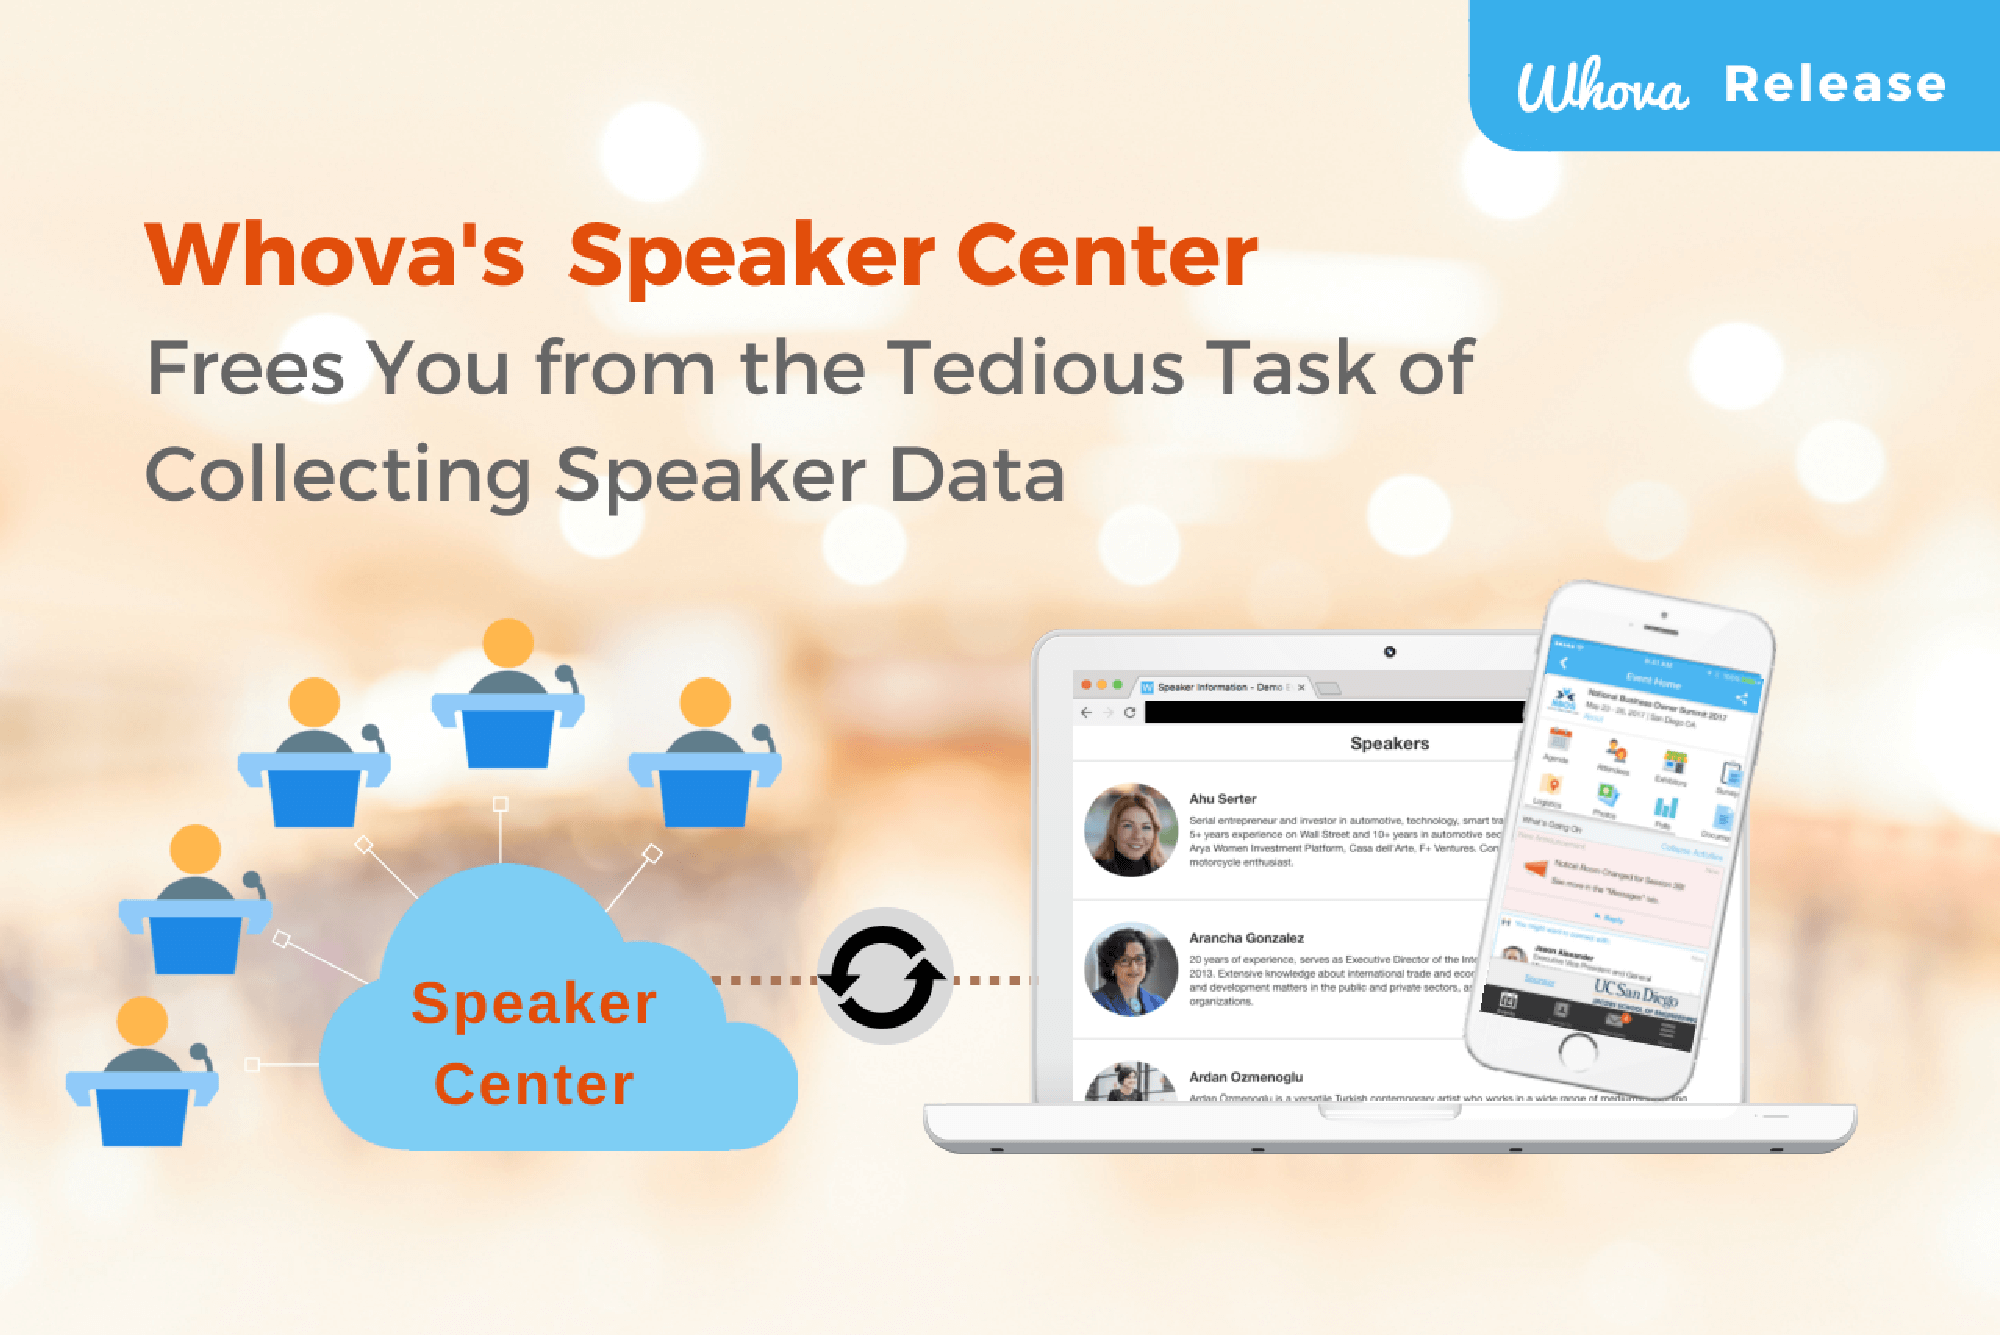 Tired of Emailing Back and Forth to Collect Speaker Data?  Whova's Speaker Center Comes to the Rescue!